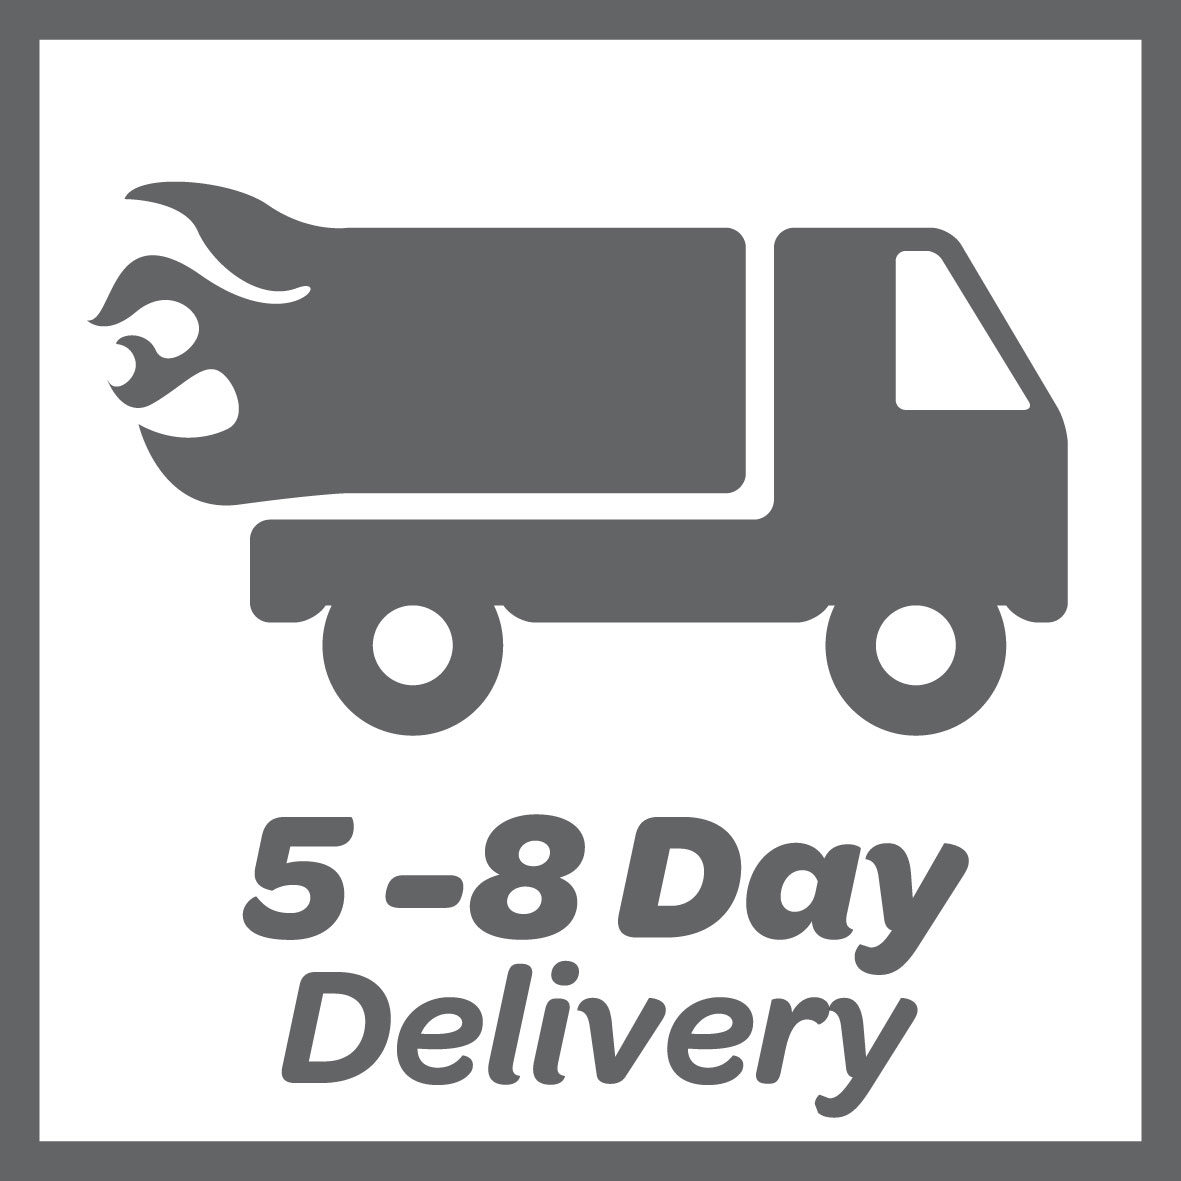 This product has quick delivery